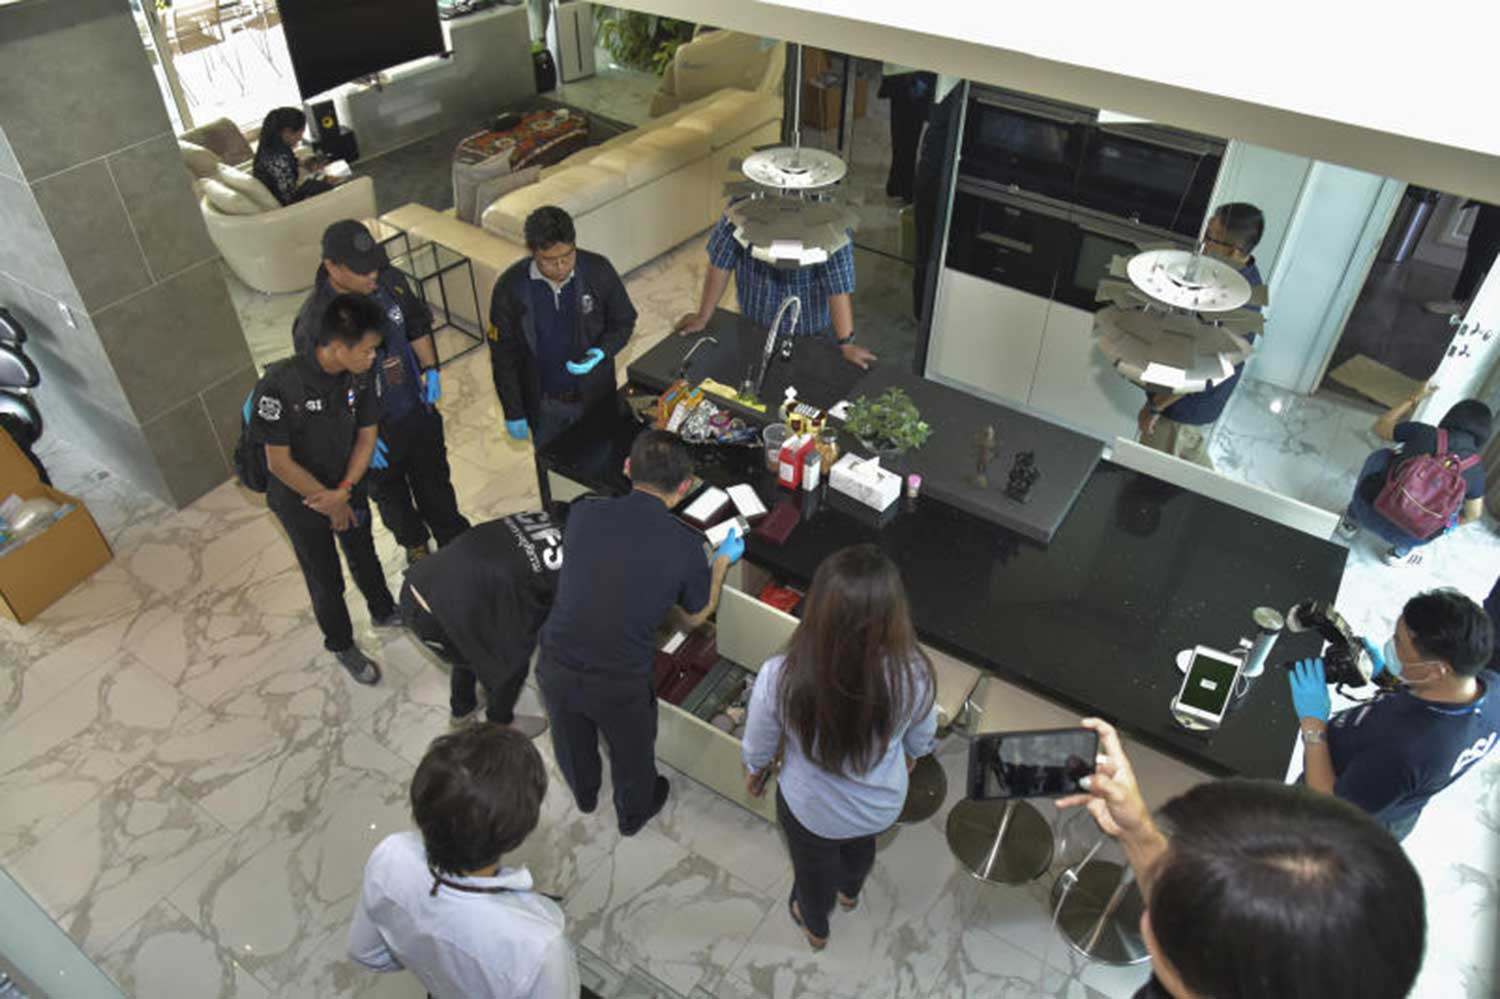 Officials from the Department of Special Investigation search a house in Bangkok to find evidence involving the Forex-3D scam in Bangkok on Nov 22. On Wednesday, the DSI searched four more locations and seized 15.3 million baht worth of assets from those accused of being behind the online broker Forex-3D scam. (DSI photo)